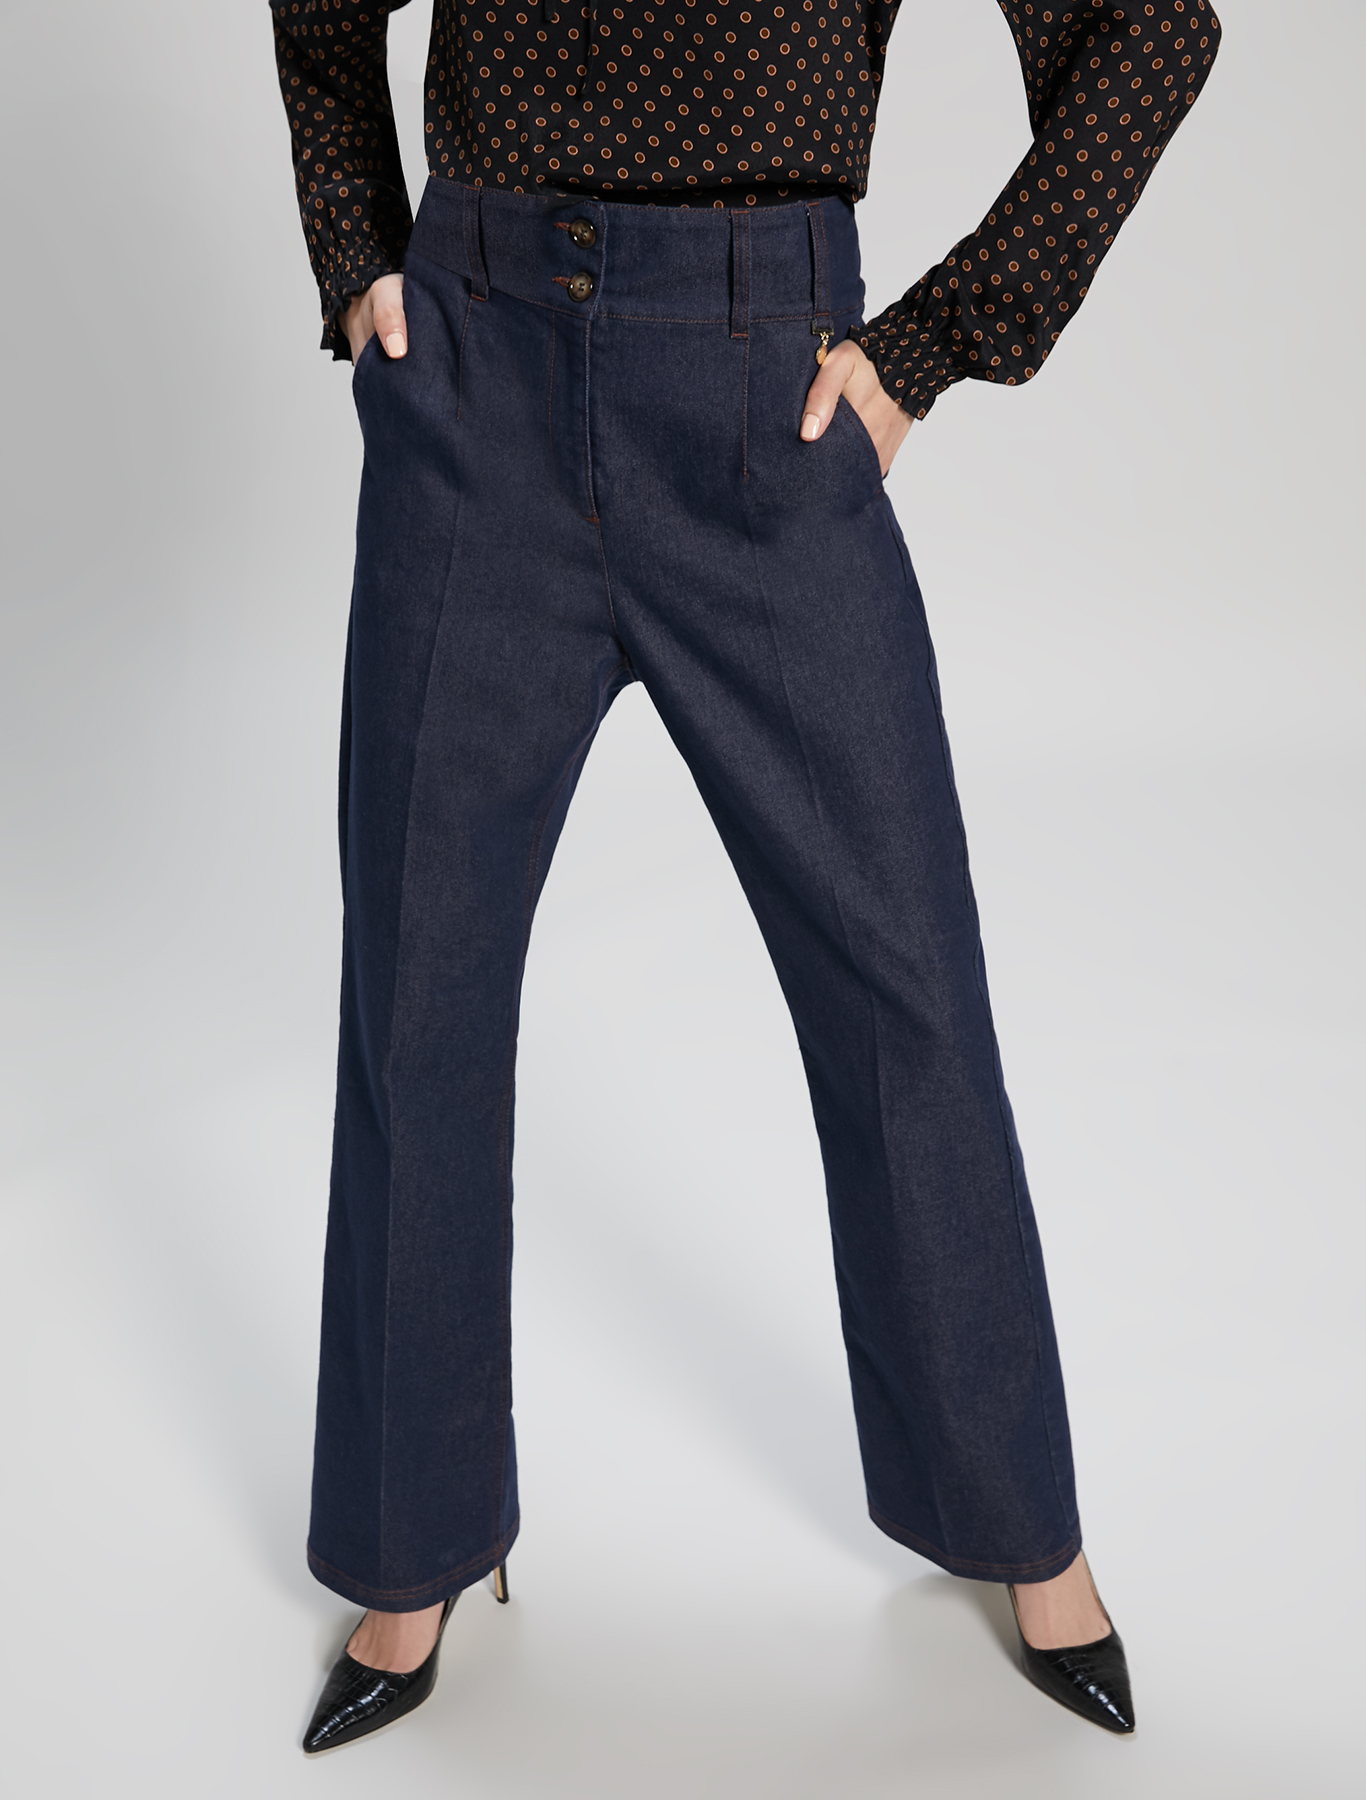 Blue bootcut jeans - midnight blue - pennyblack